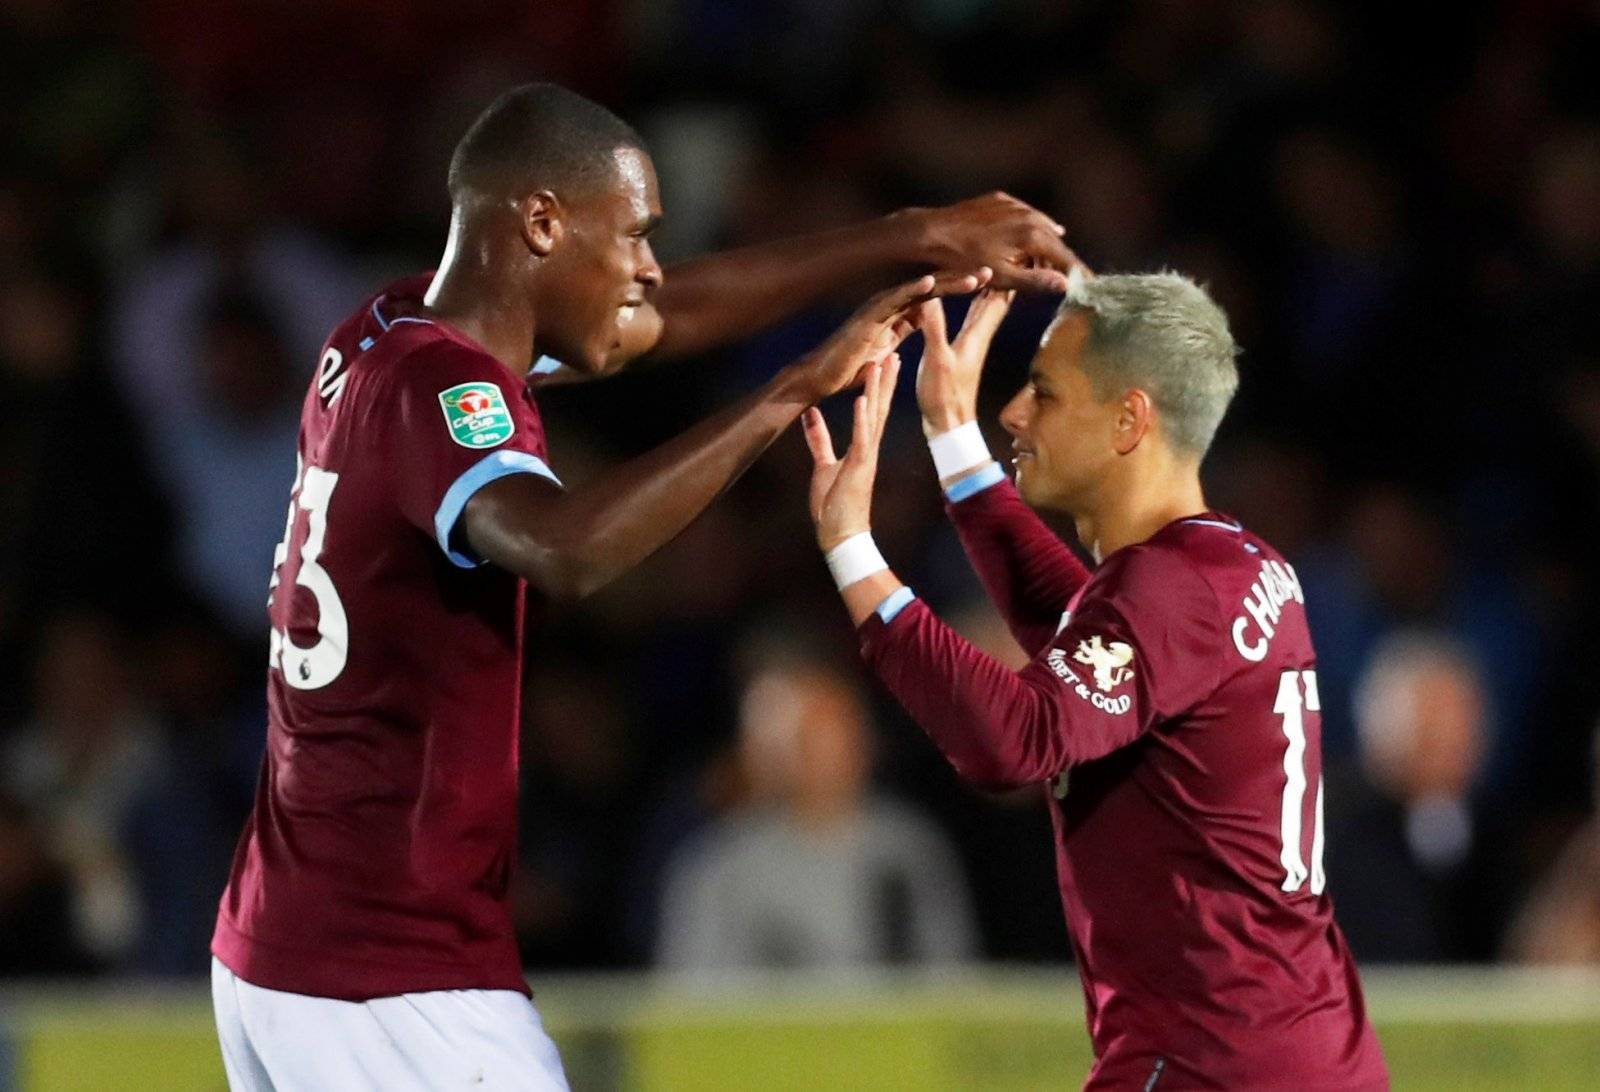 West Ham fans have been full of praise for Issa Diop and rightly so